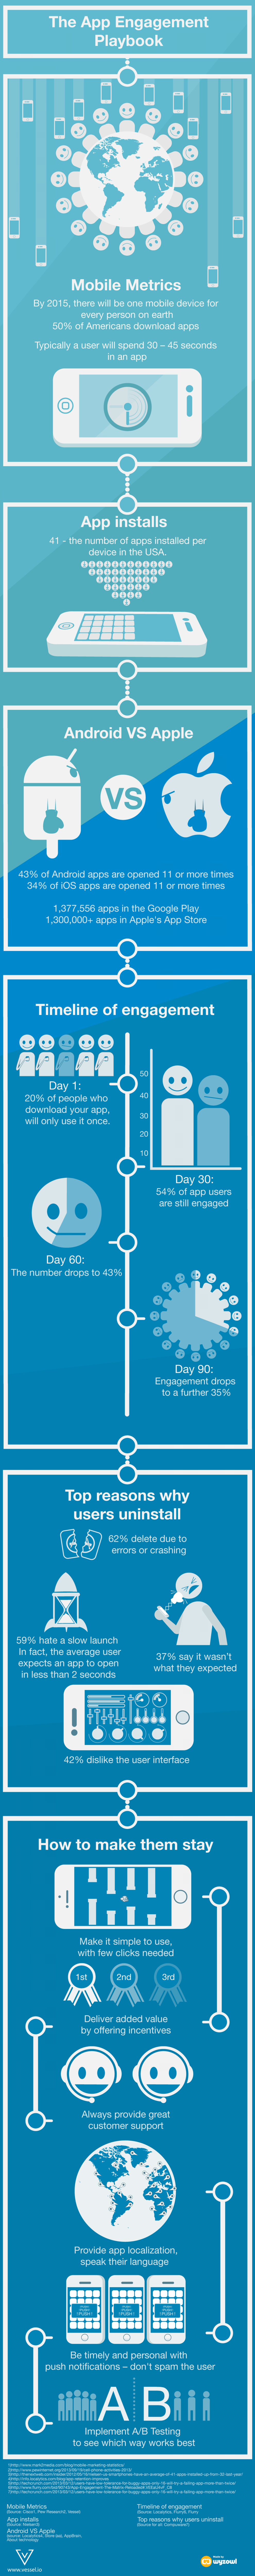 The App Engagement Playbook Infographic